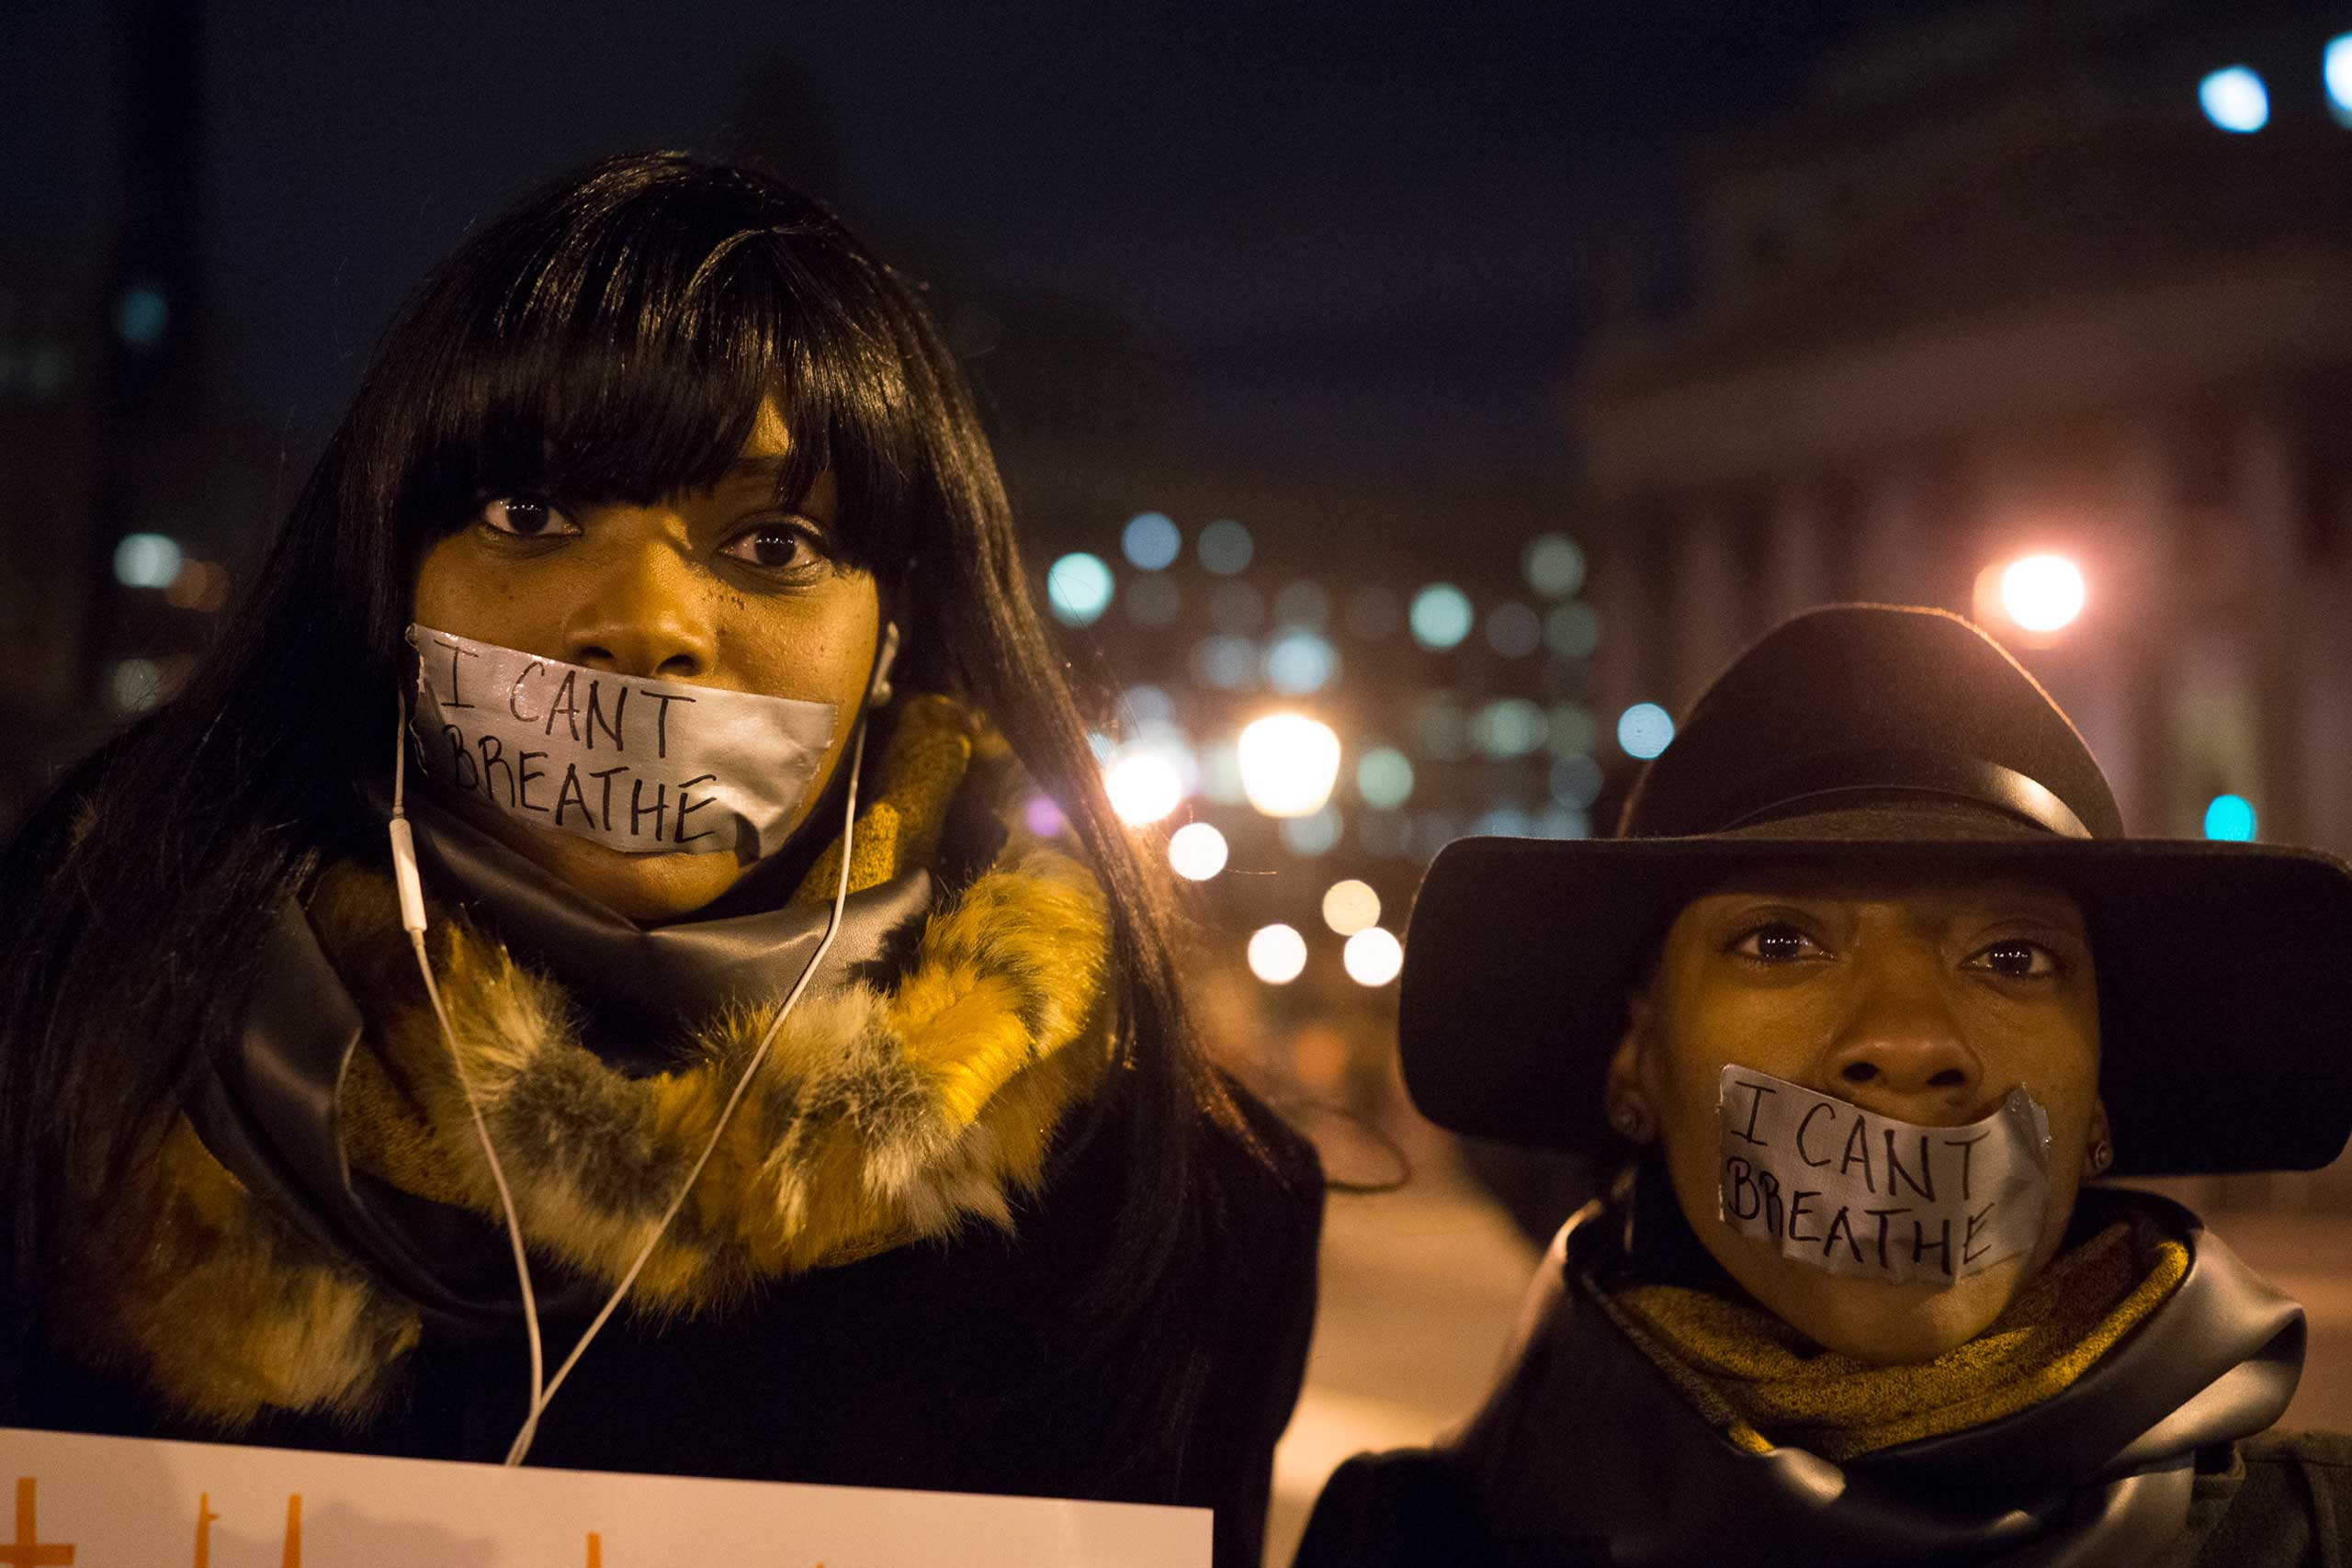 Thousands of protestors demonstrate against police brutality in New York City as part of the Millions March on Dec. 13, 2014.